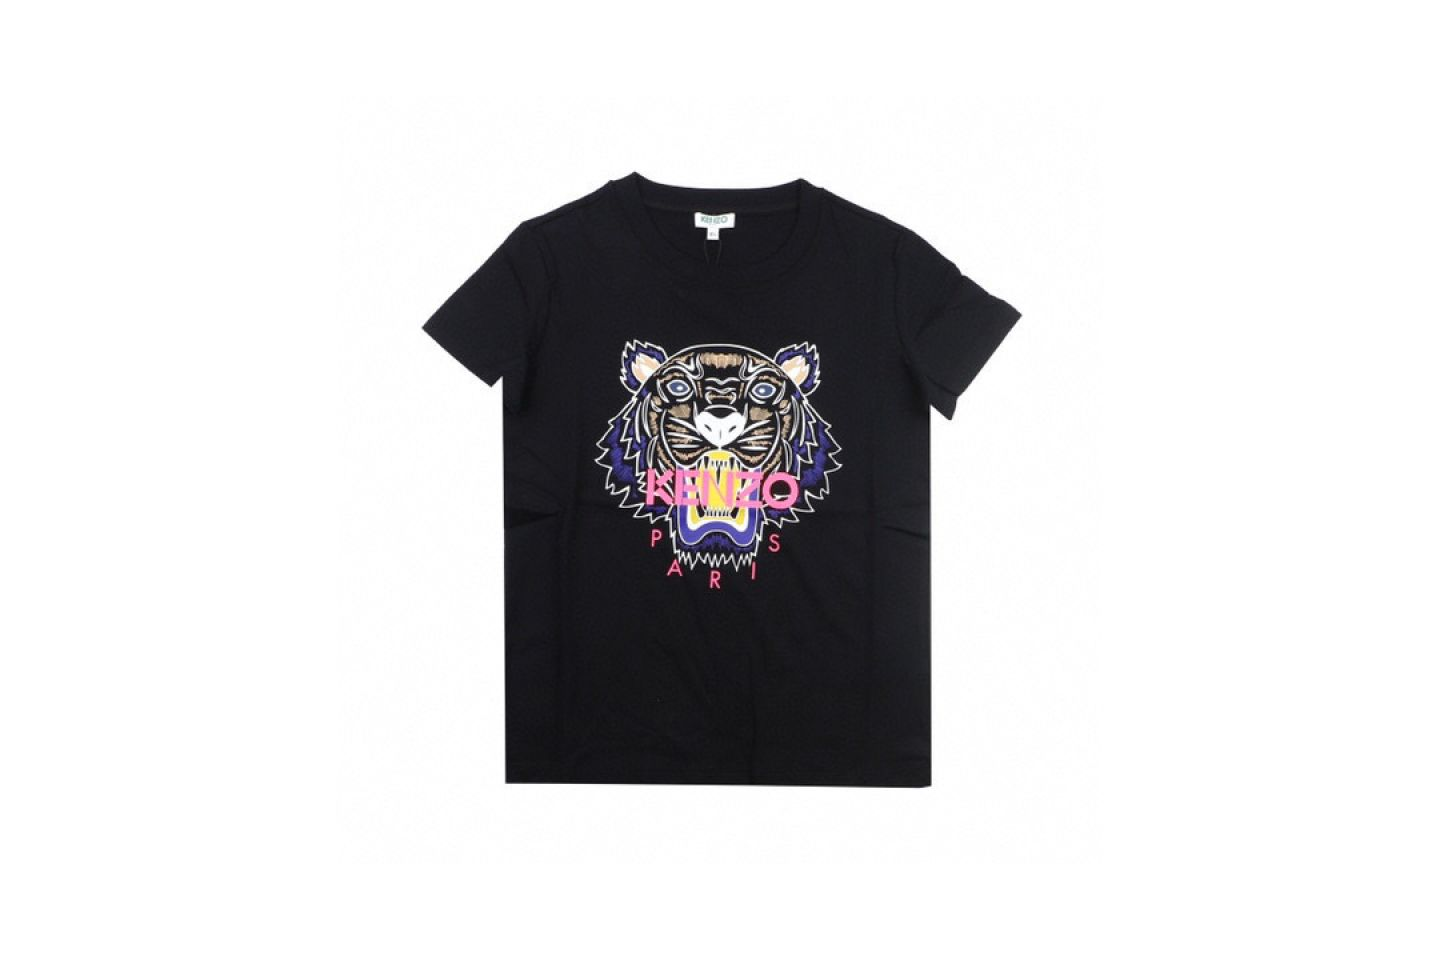 Shirt 2020 kenzo T-shirt Black Pink Purple 1 2020_kenzo_t_shirt_black_pink_purple_1